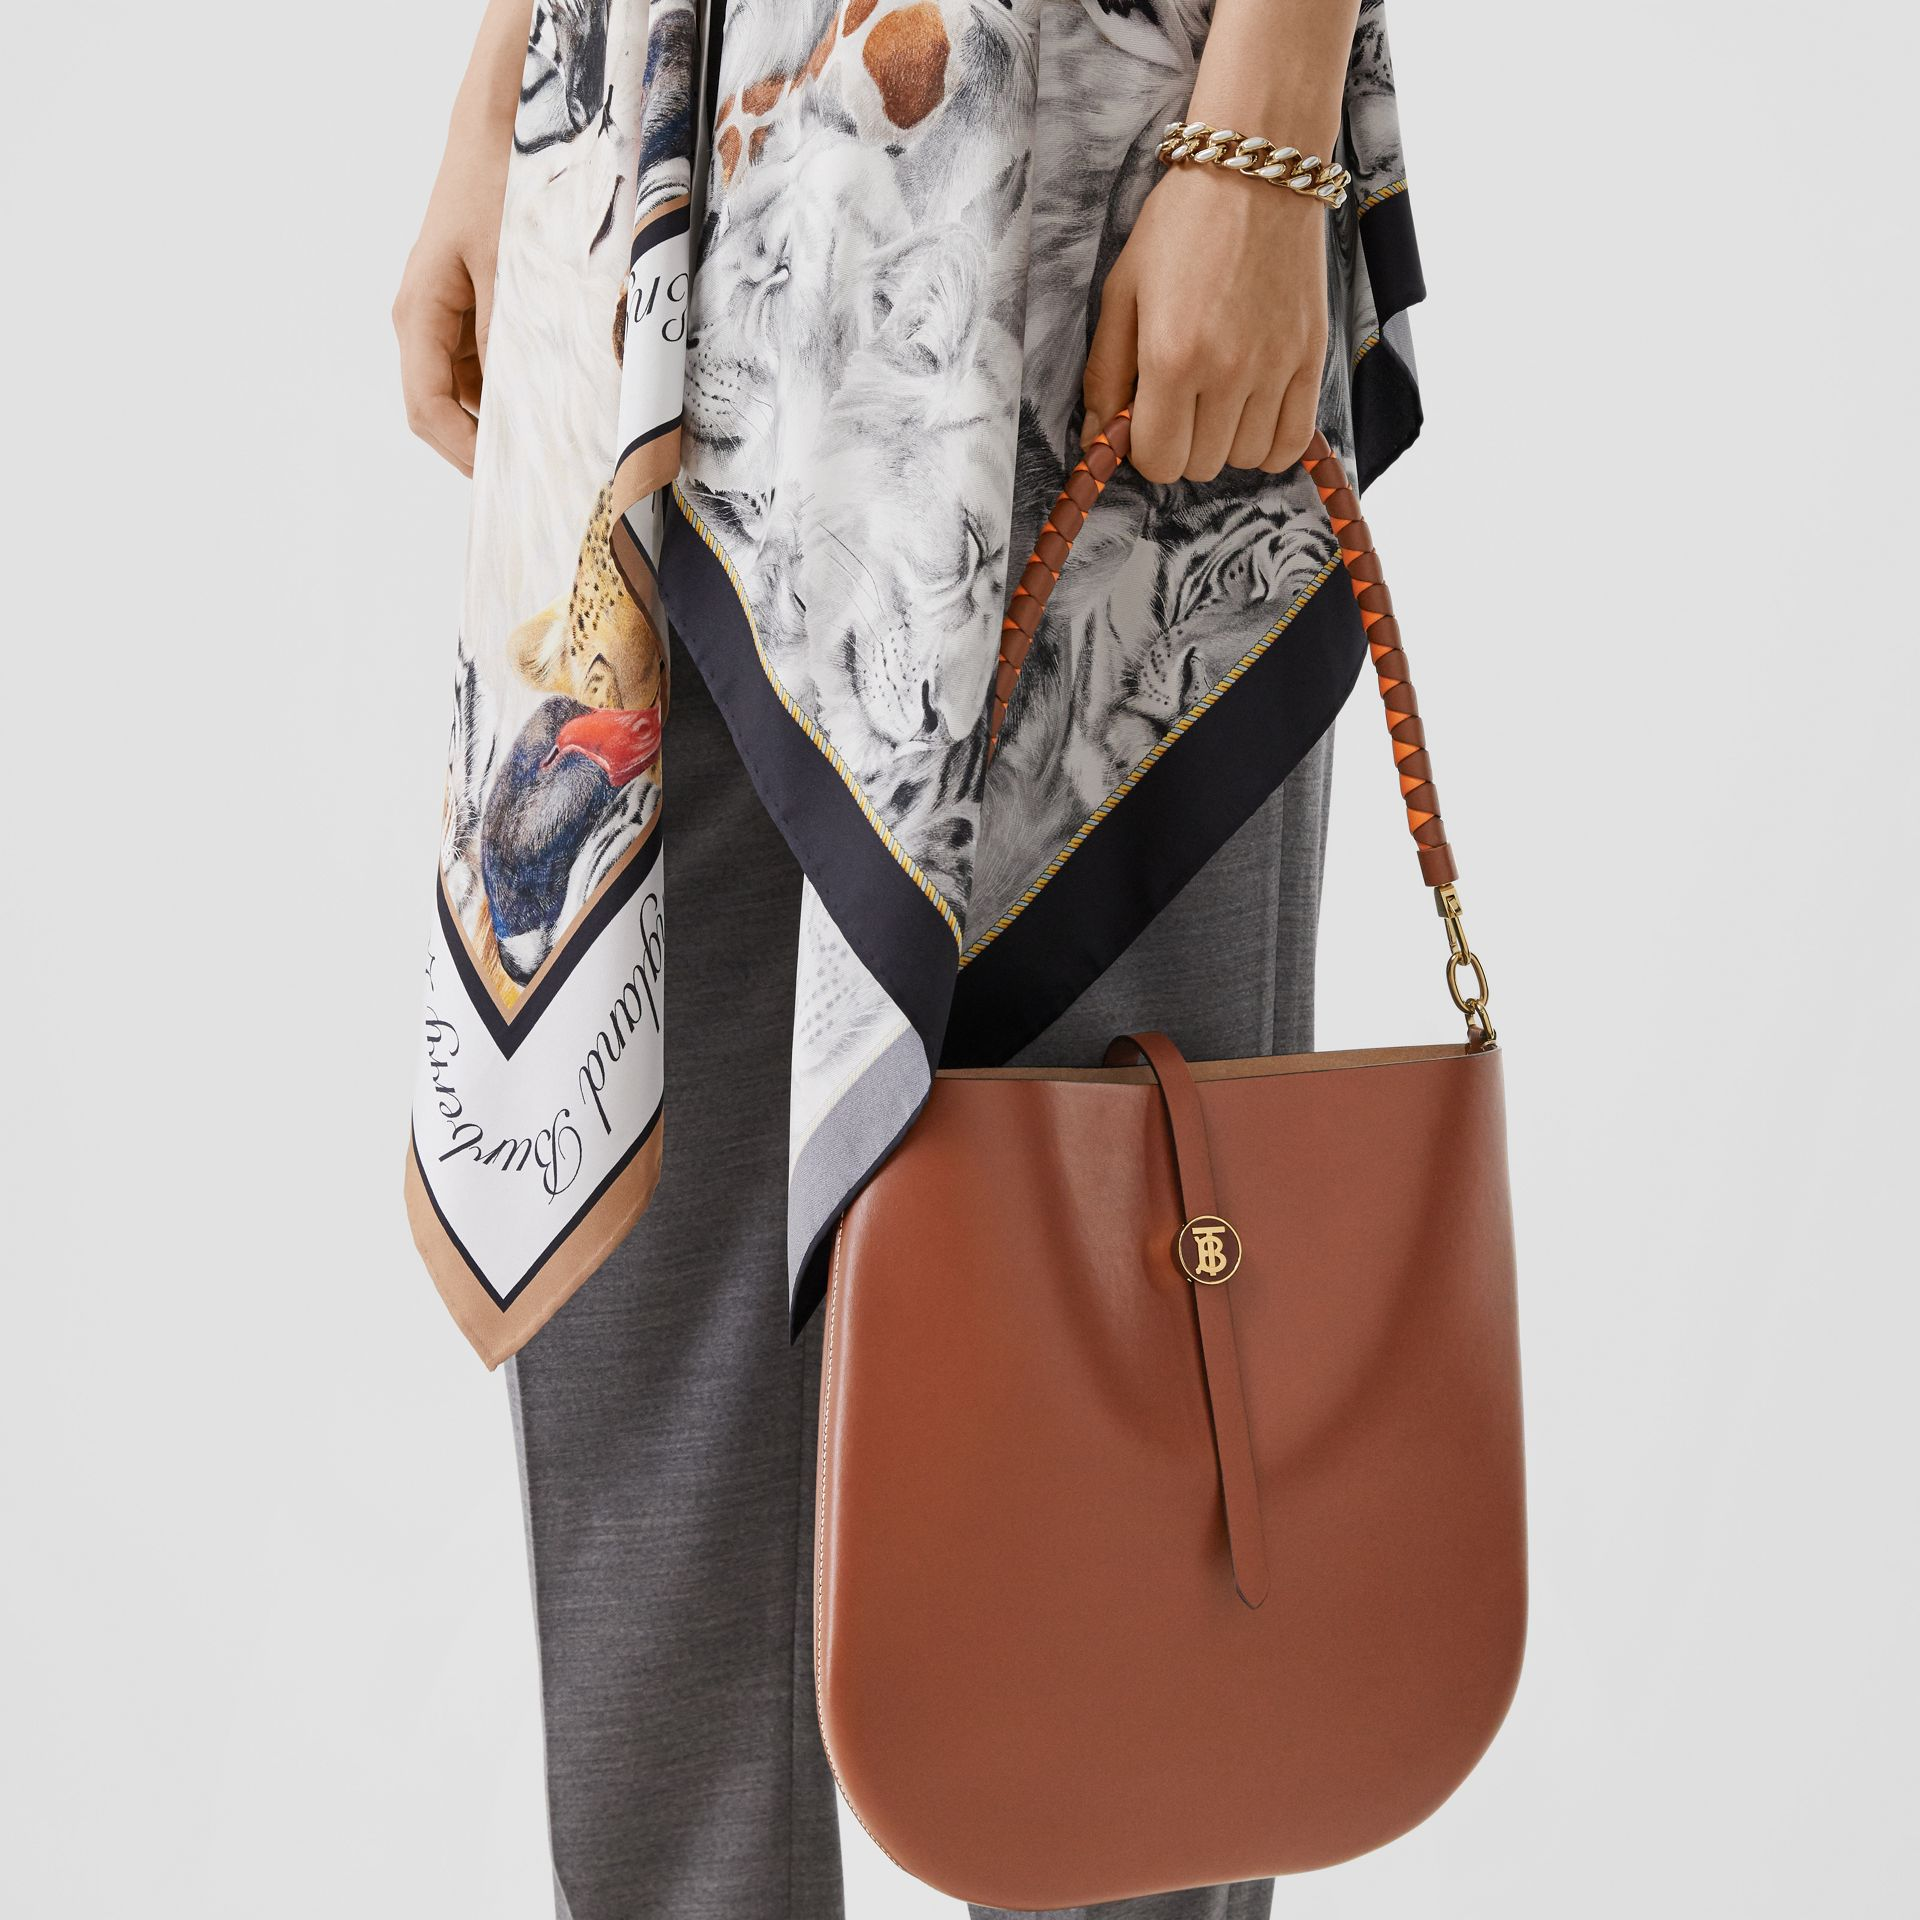 Leather Anne Bag in Tan - Women | Burberry Australia - gallery image 2